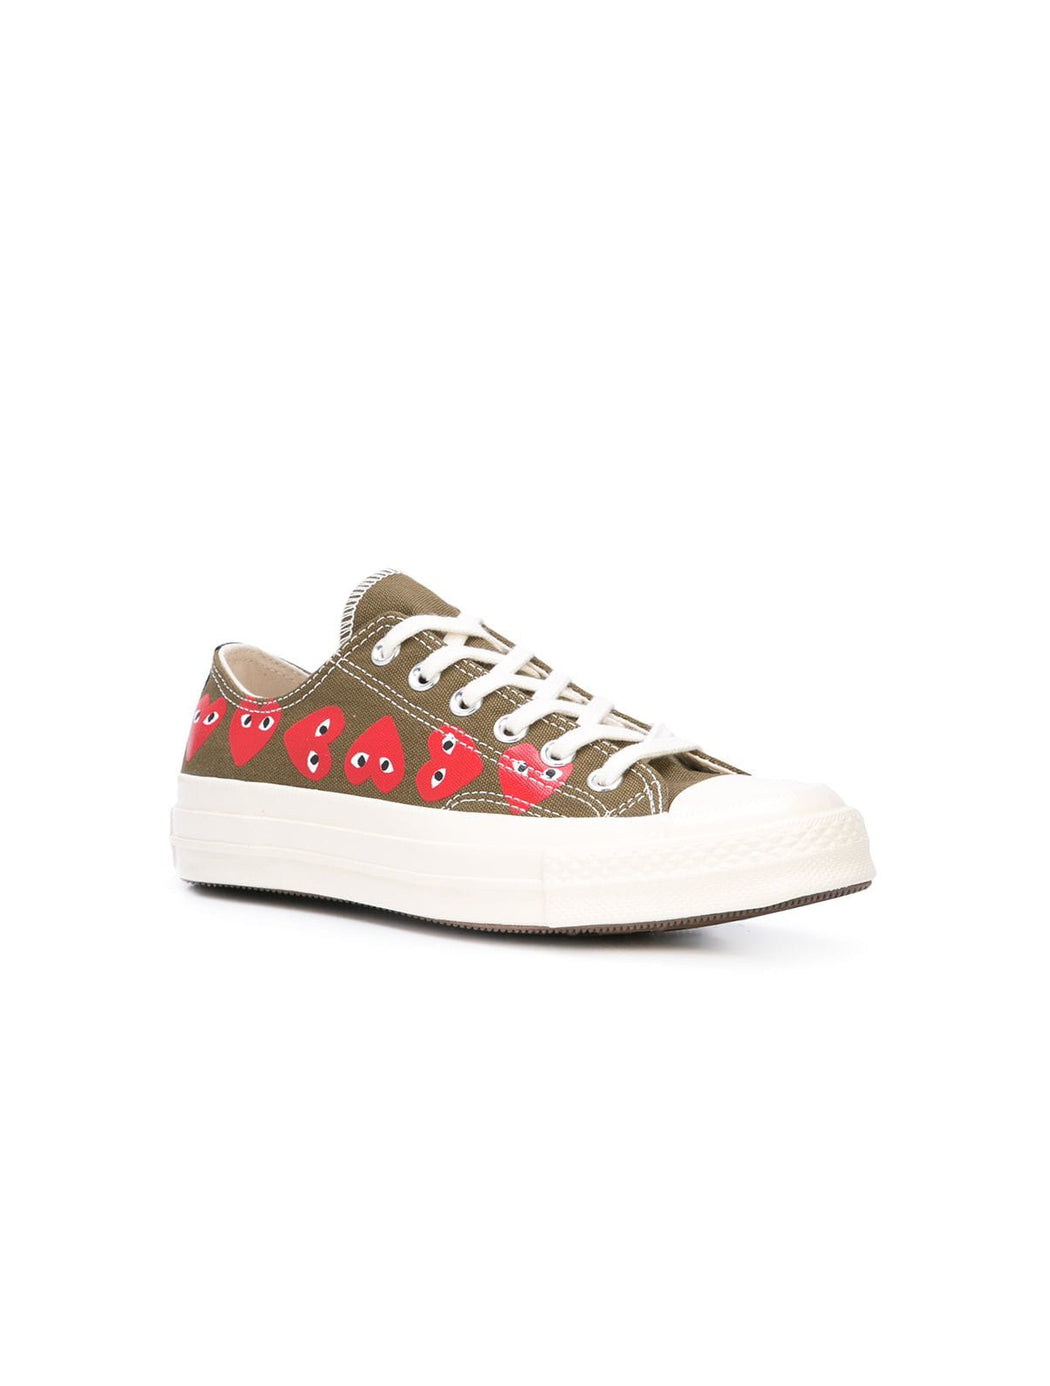 PLAY X Converse Multi Heart Low Top